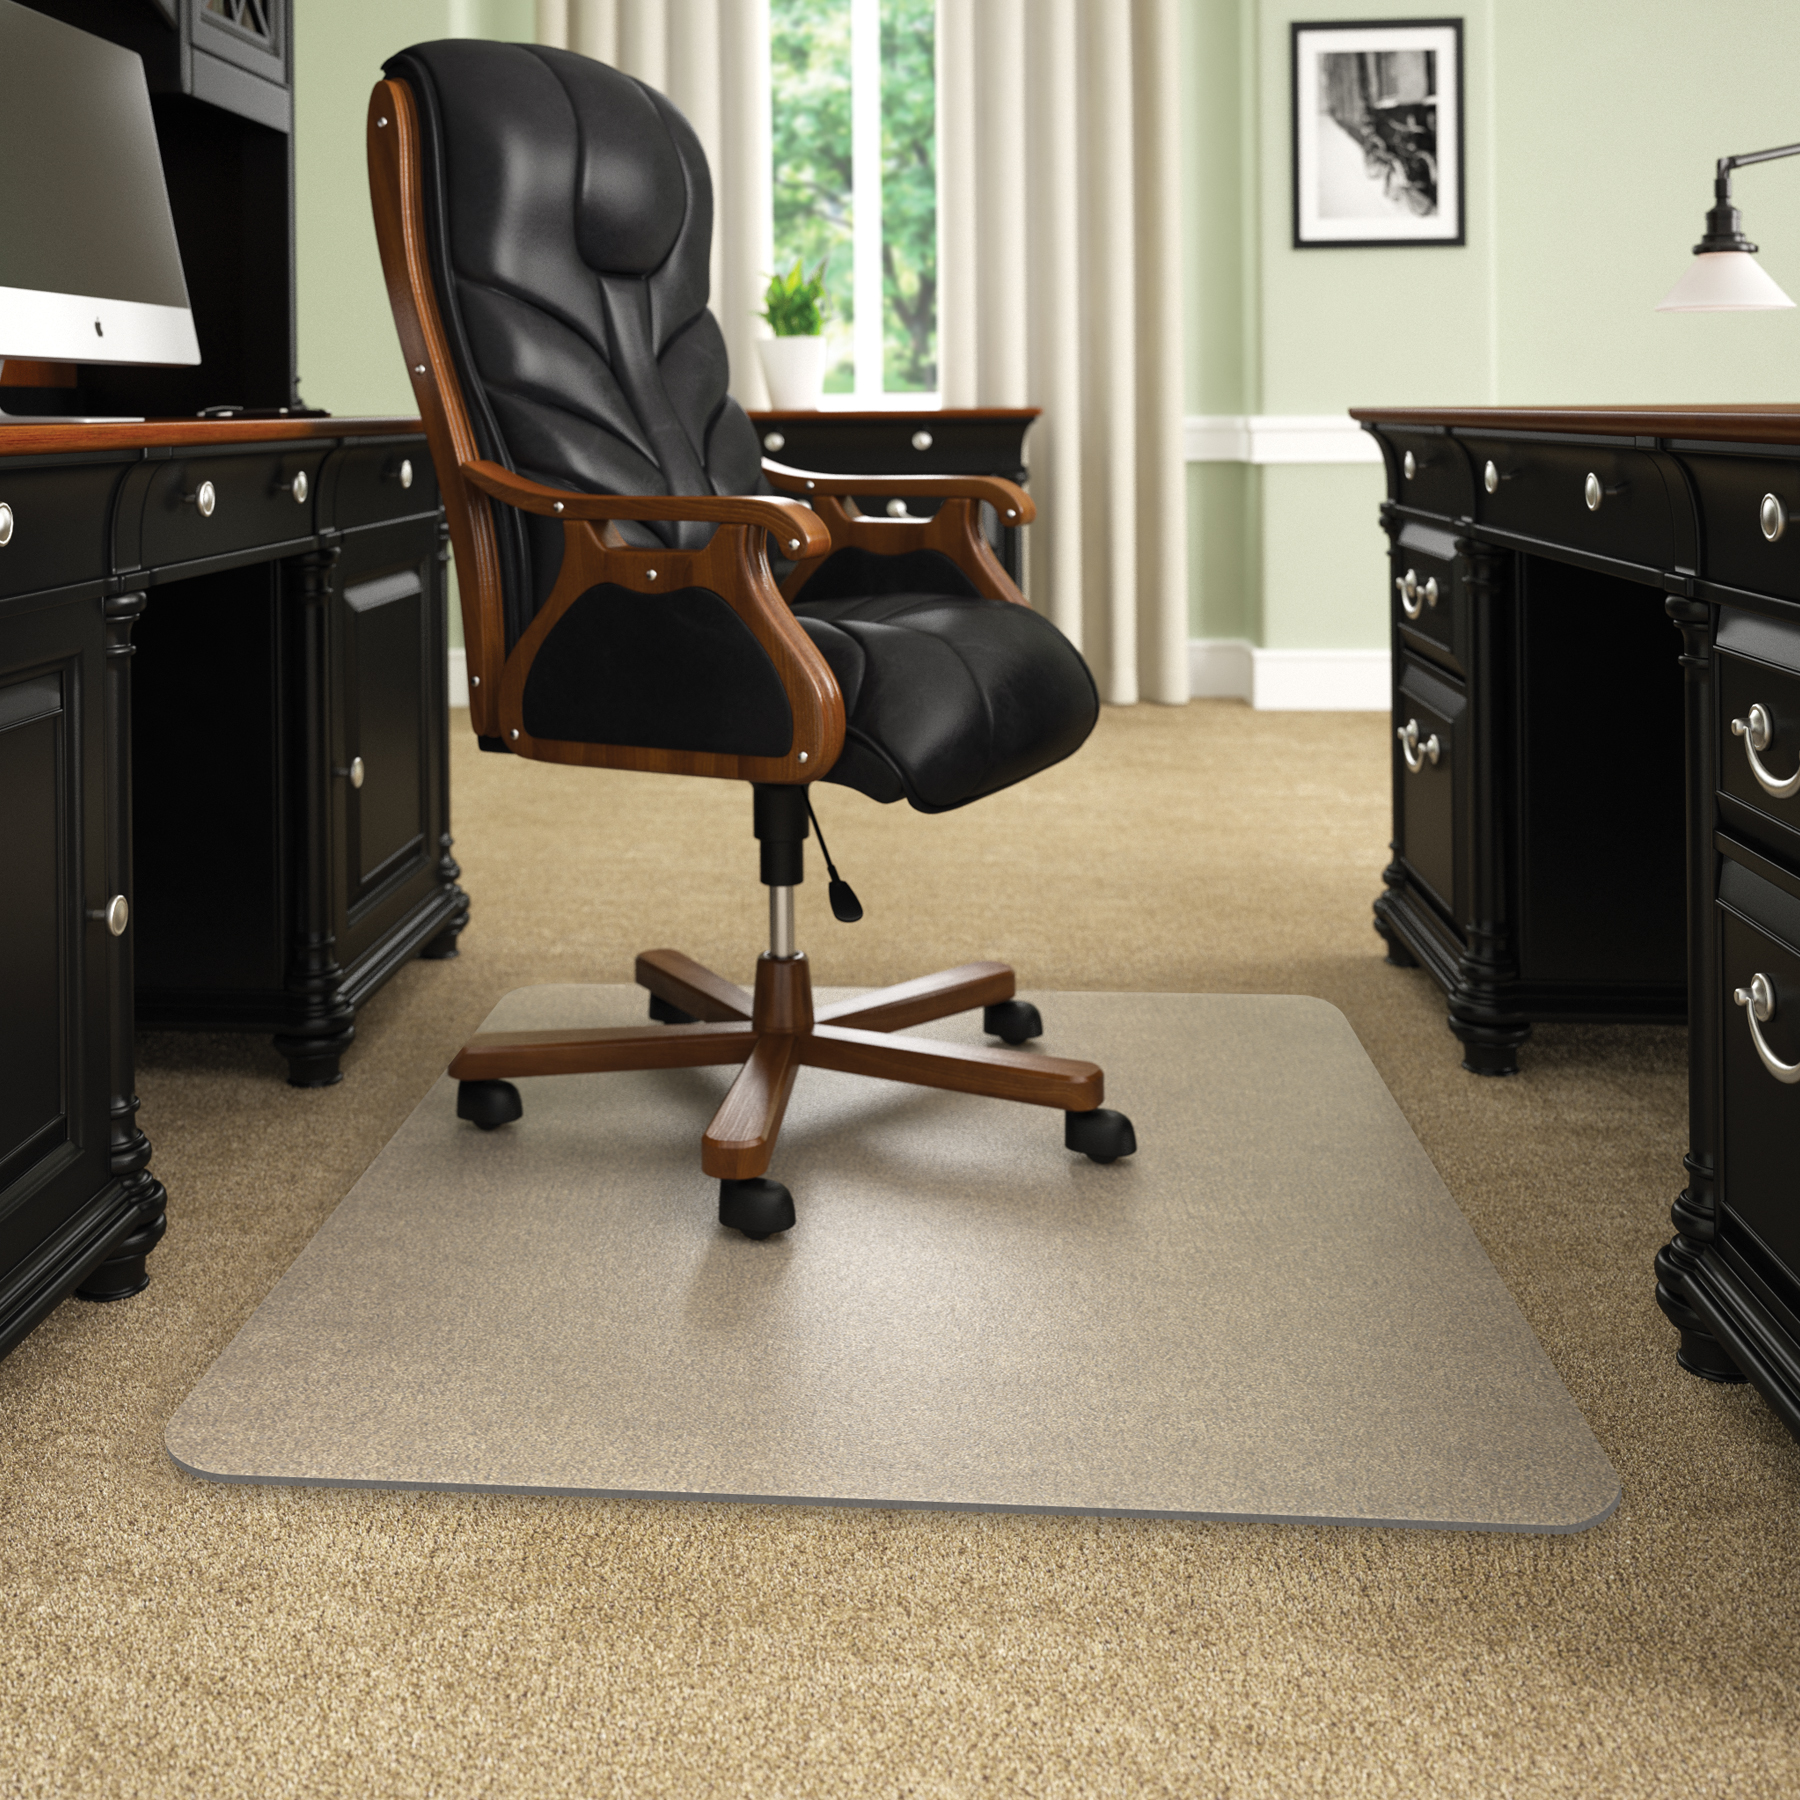 desk chair mats slip covers execumat thickest best selling opaque